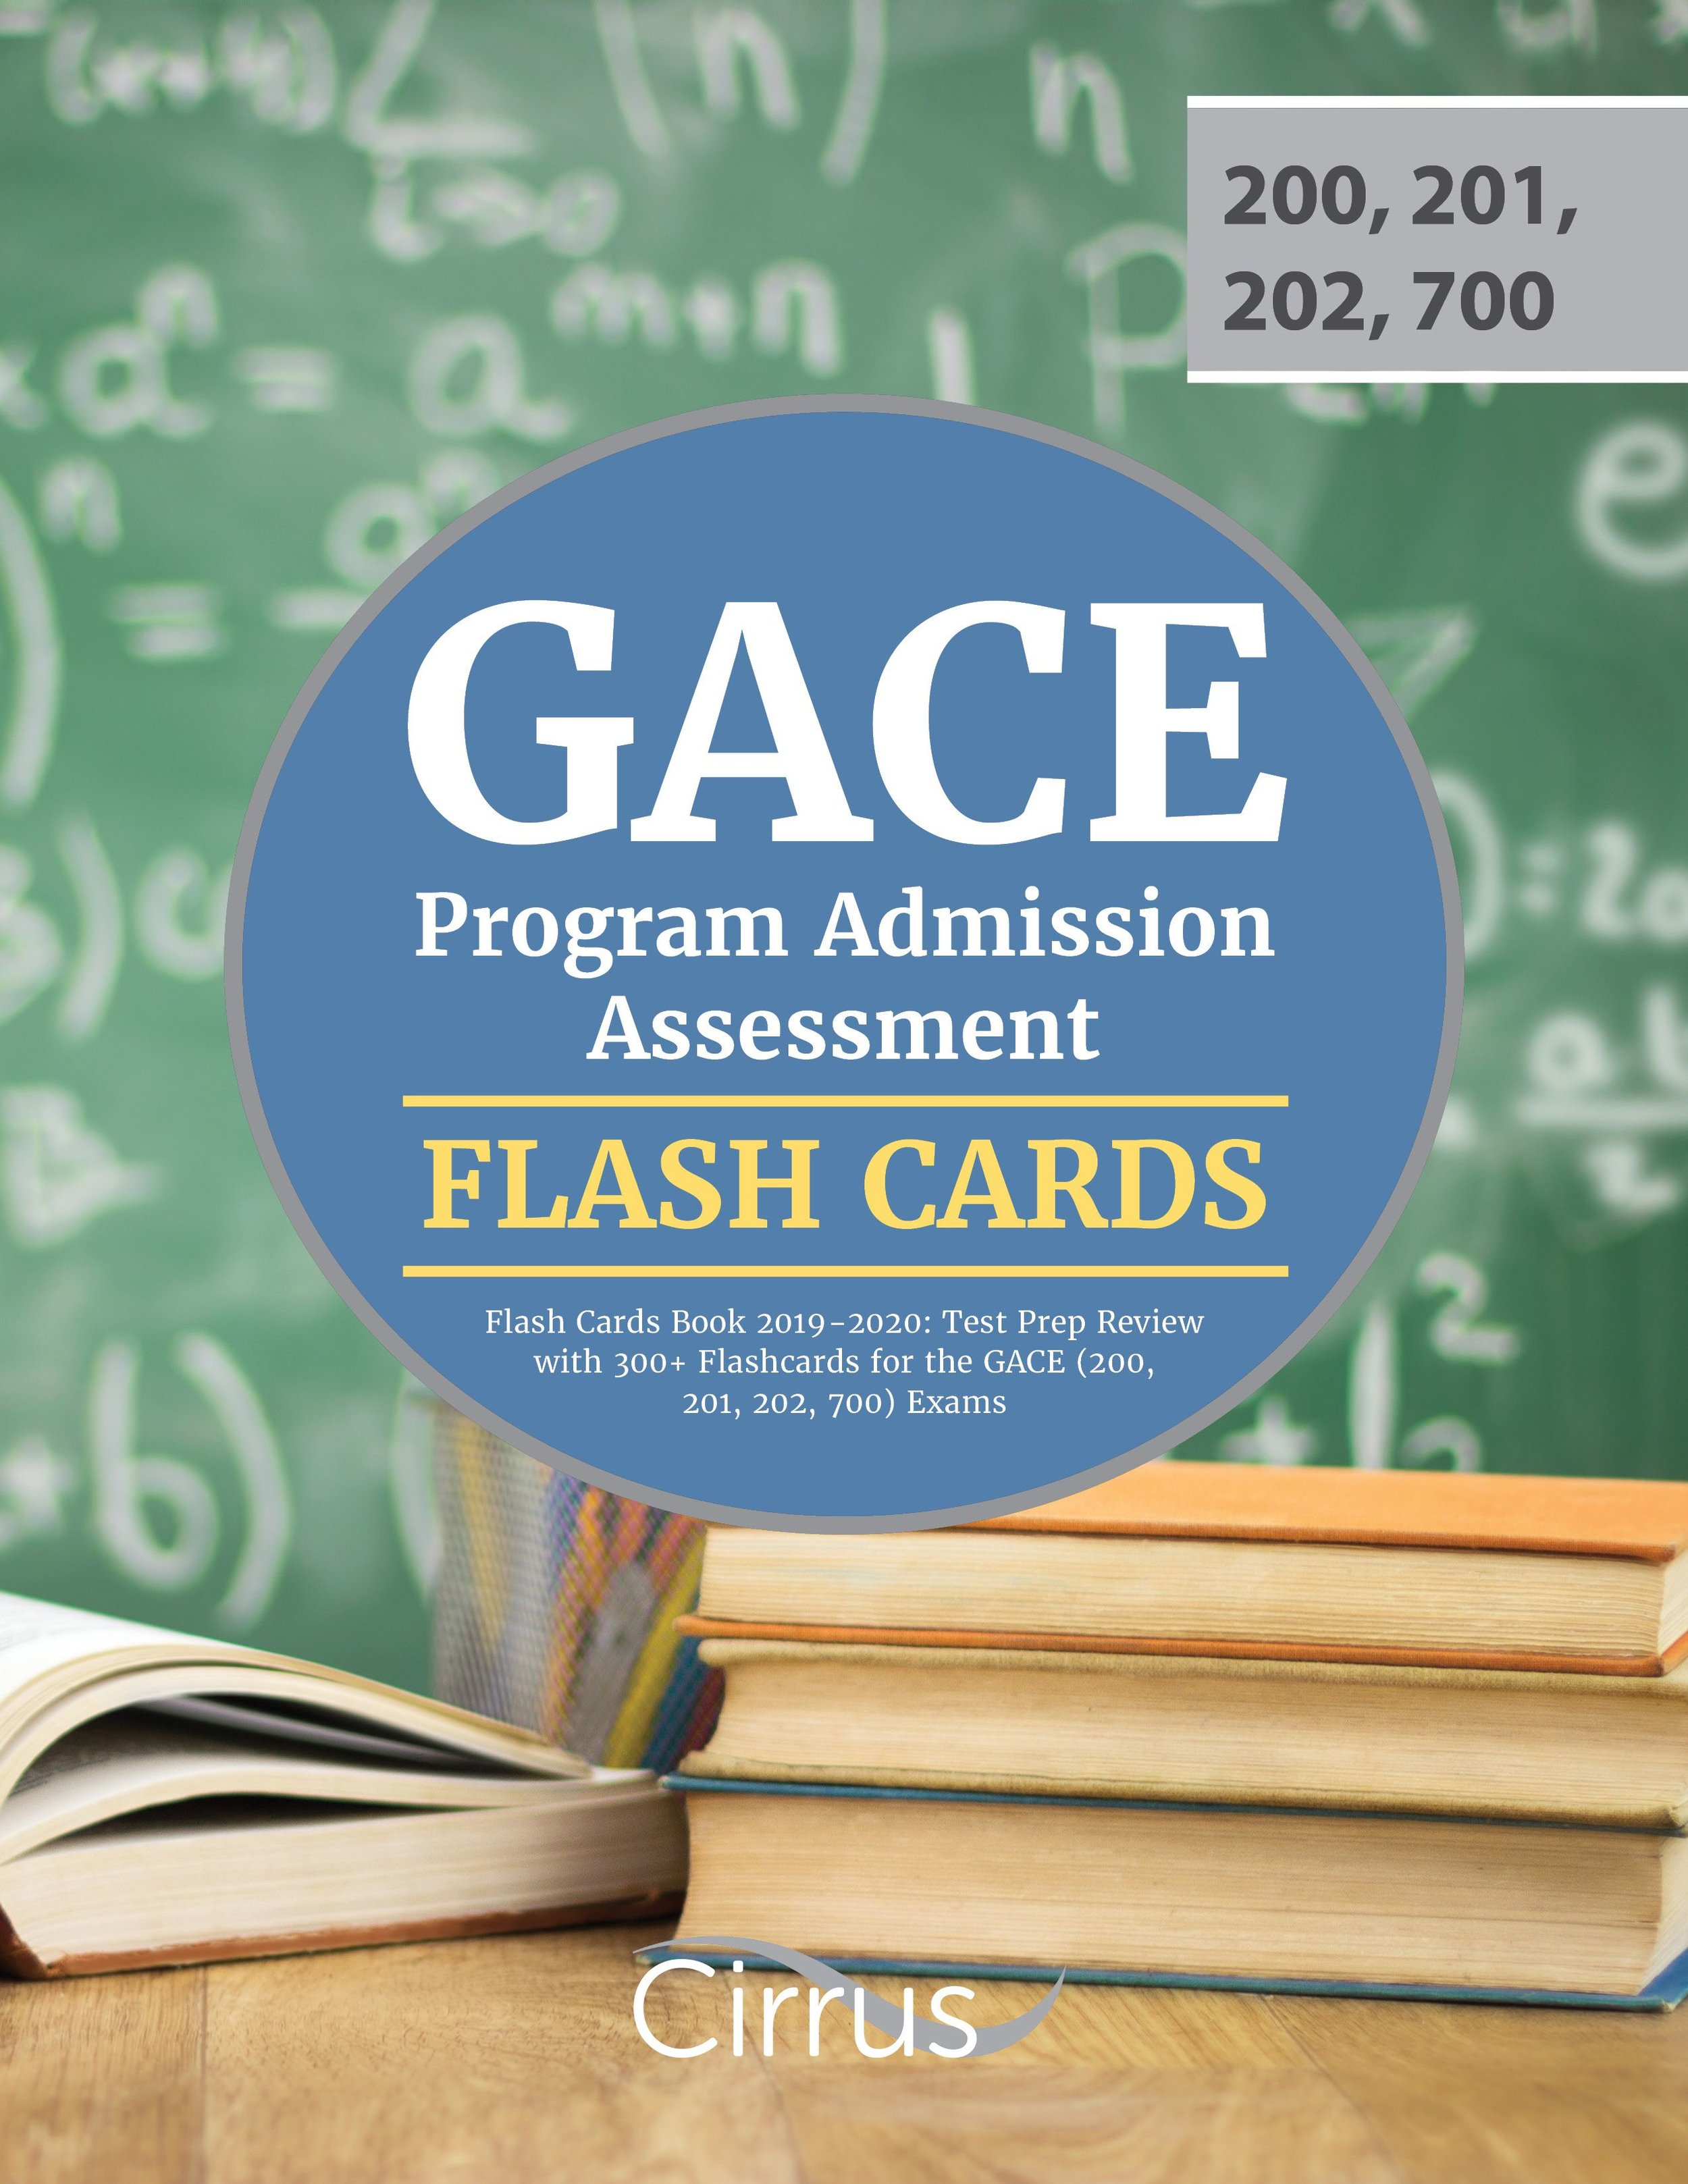 GACE Program Admission Assessment Flash Cards